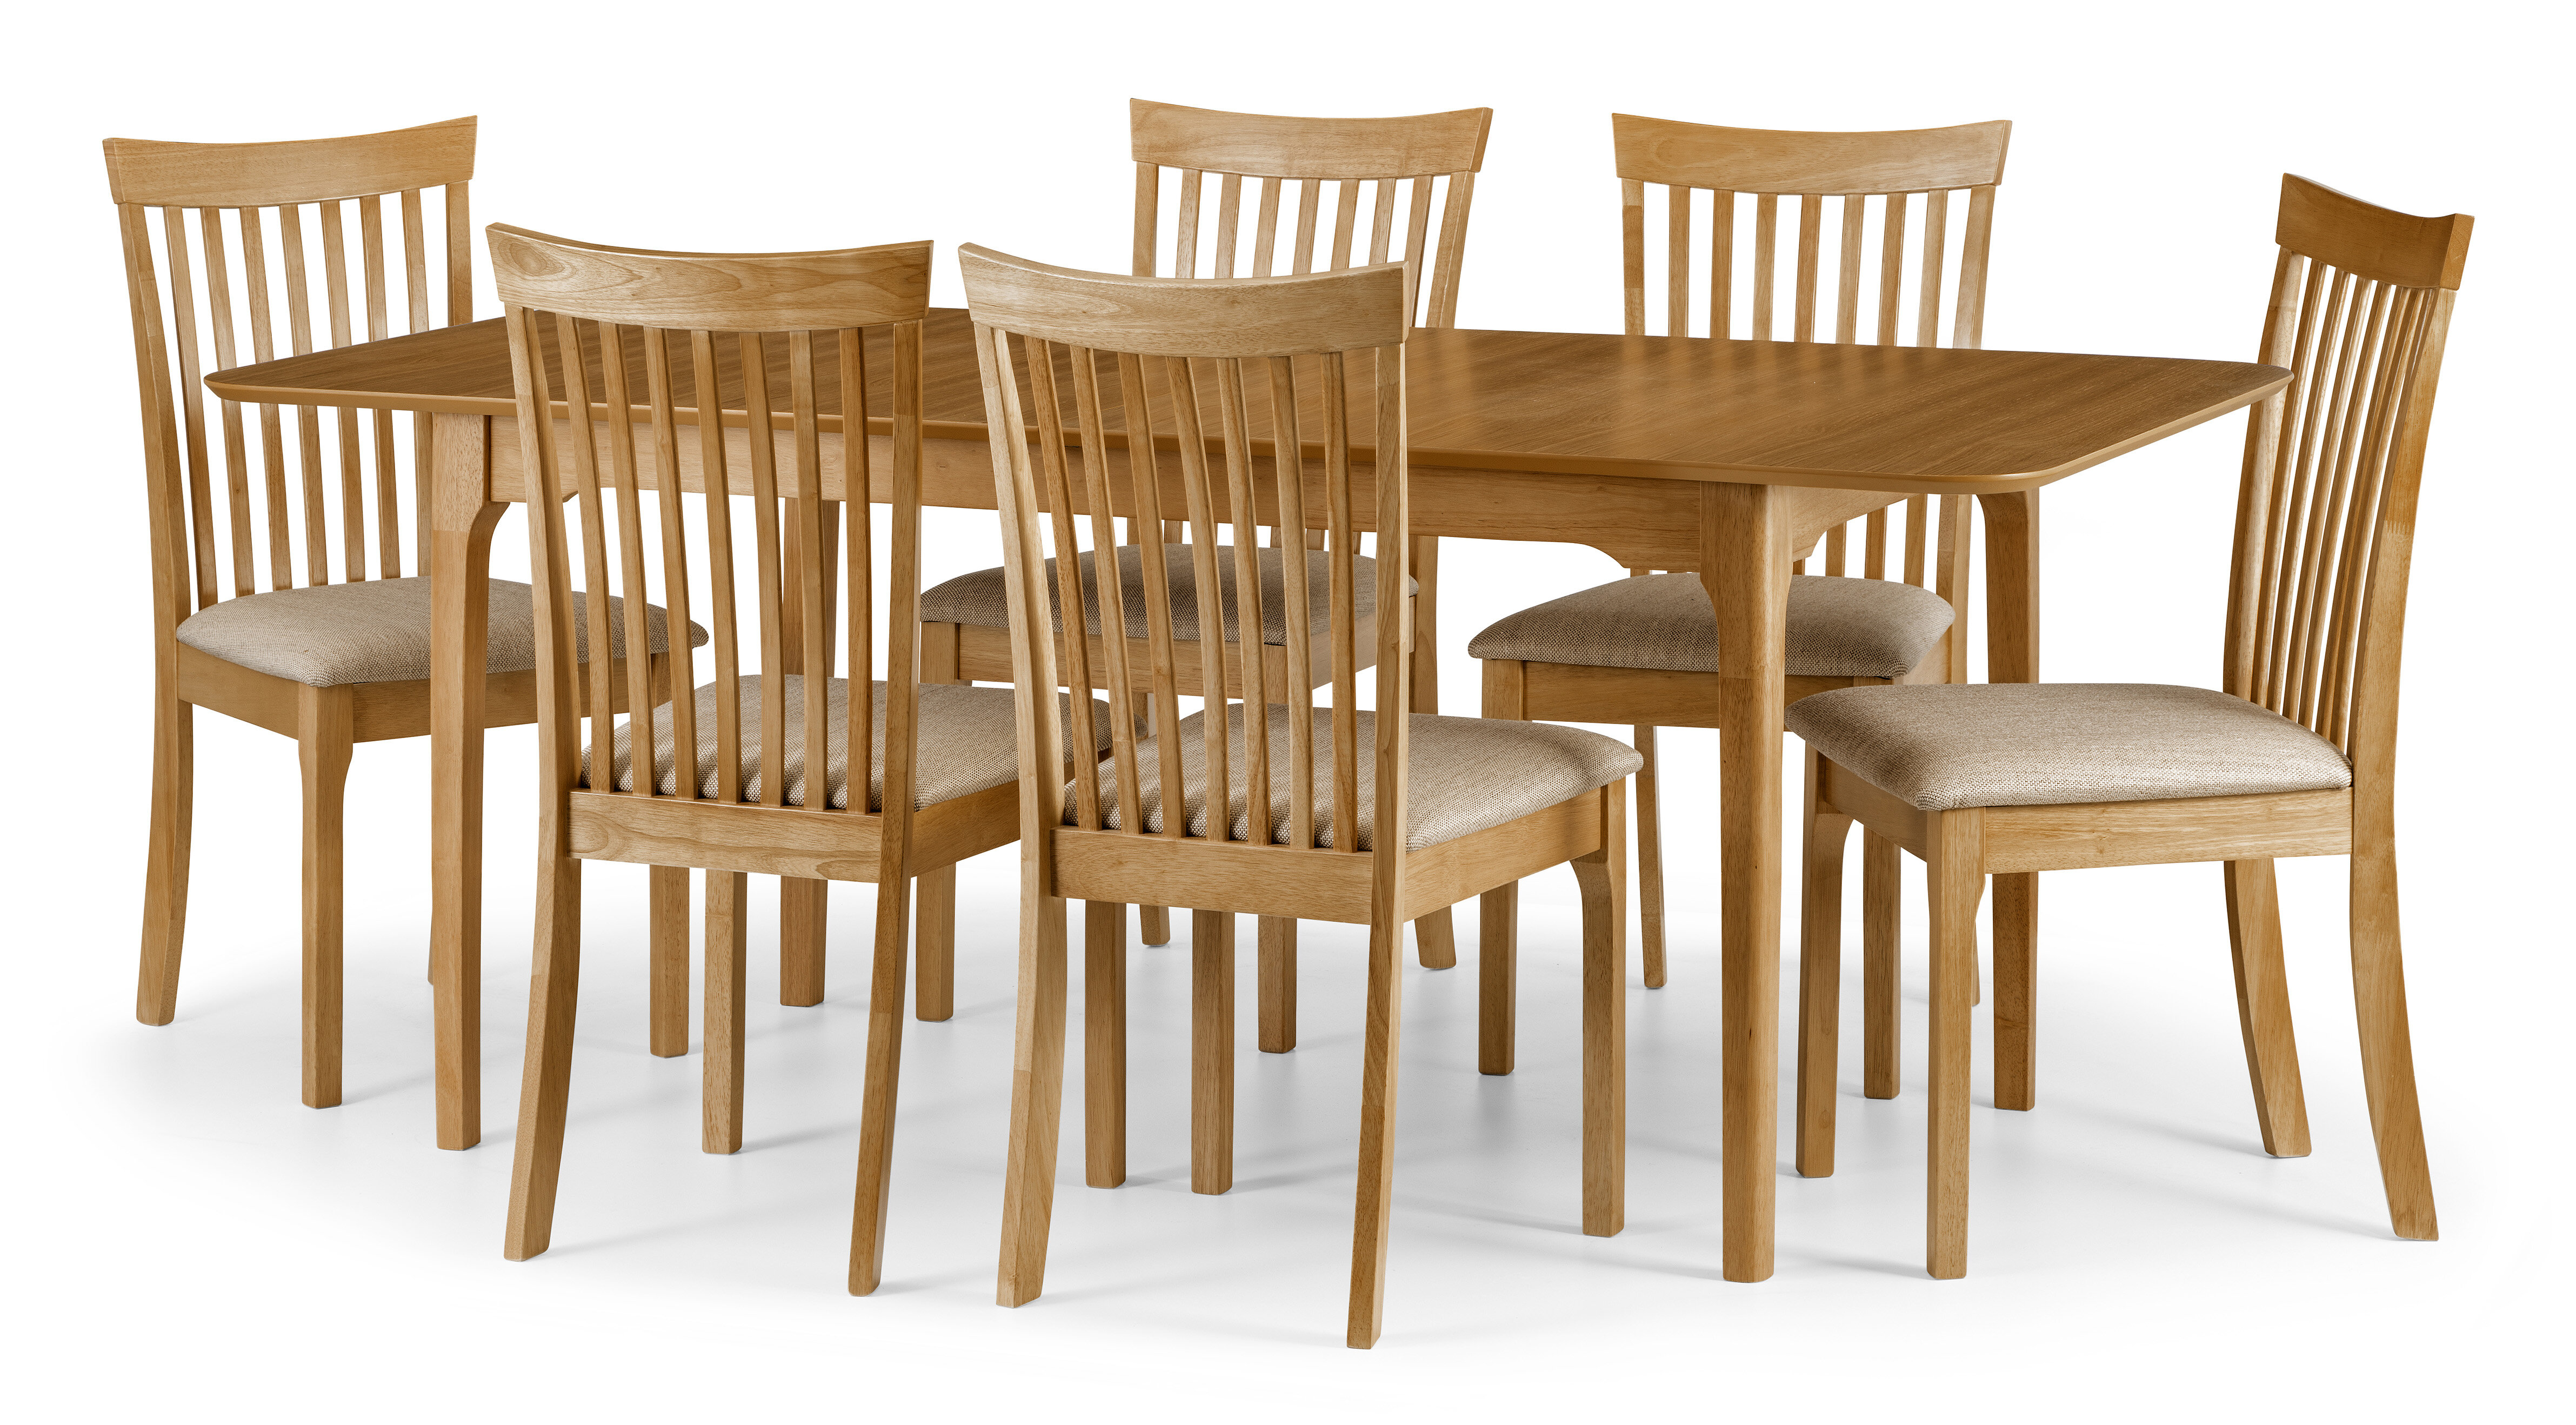 Three Posts Allport 7 Piece Extendable Dining Set With 6 Chairs Reviews Wayfair Co Uk